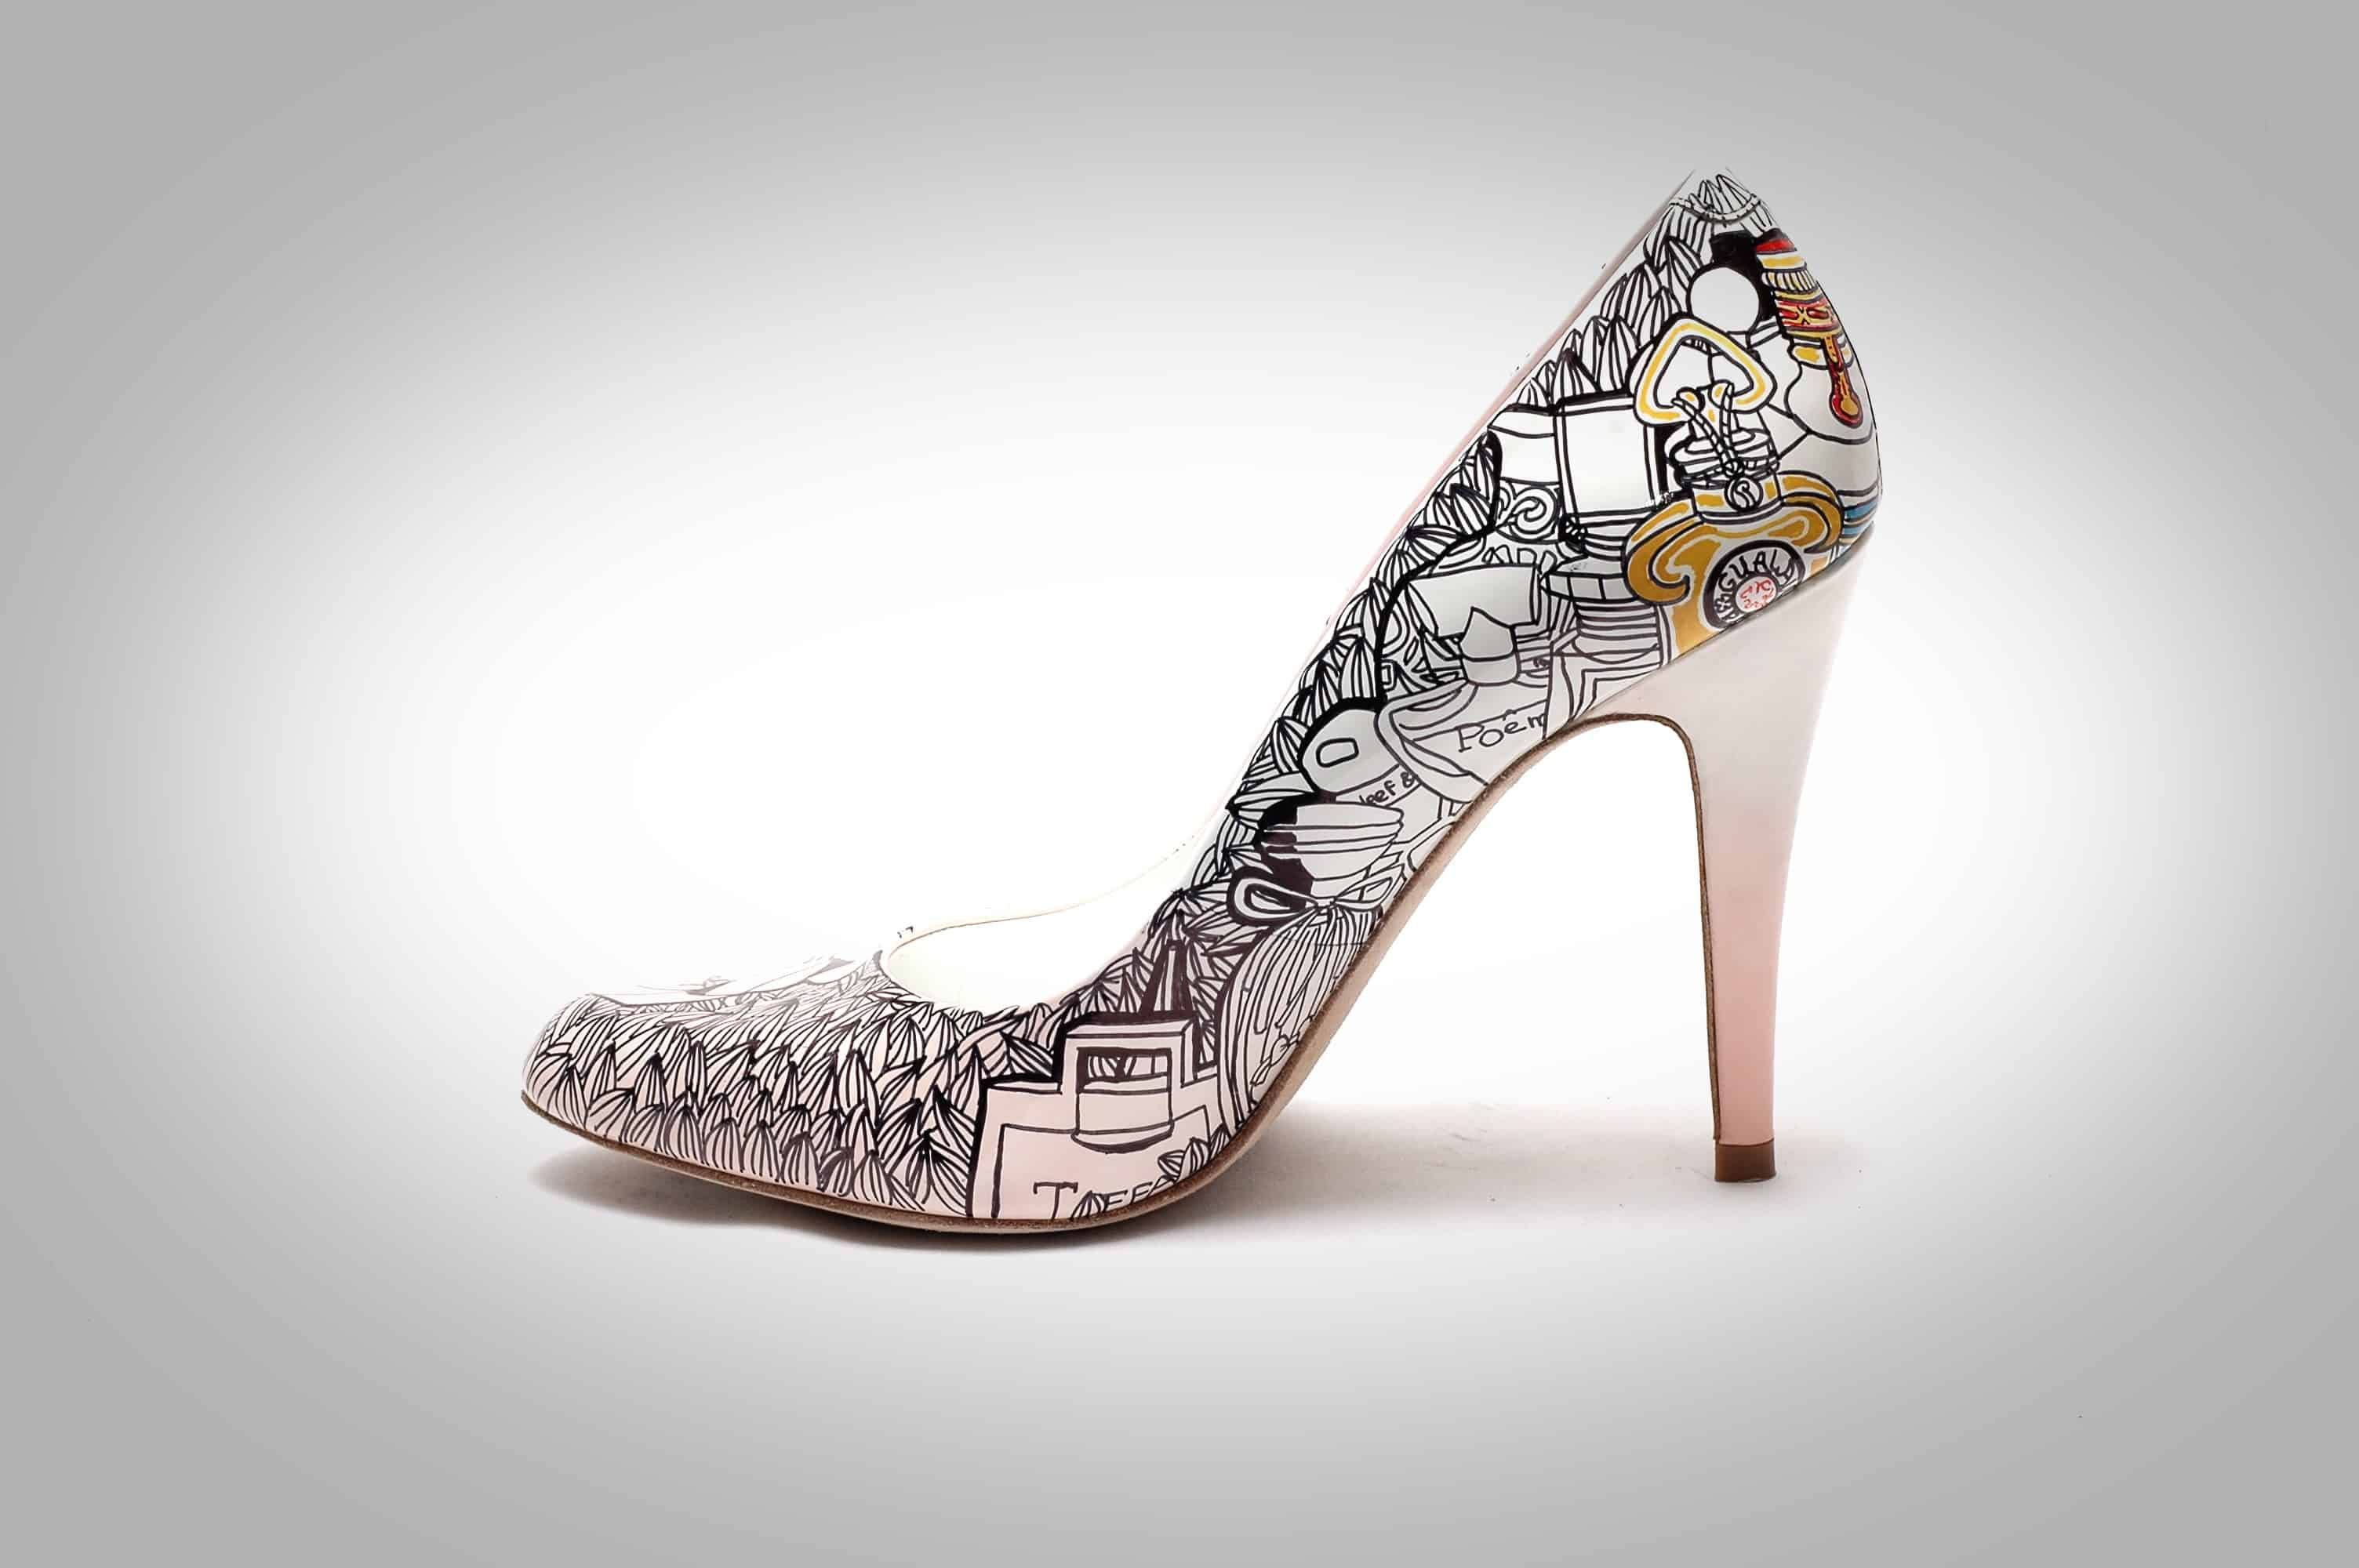 Finely detailed patterns on pumps